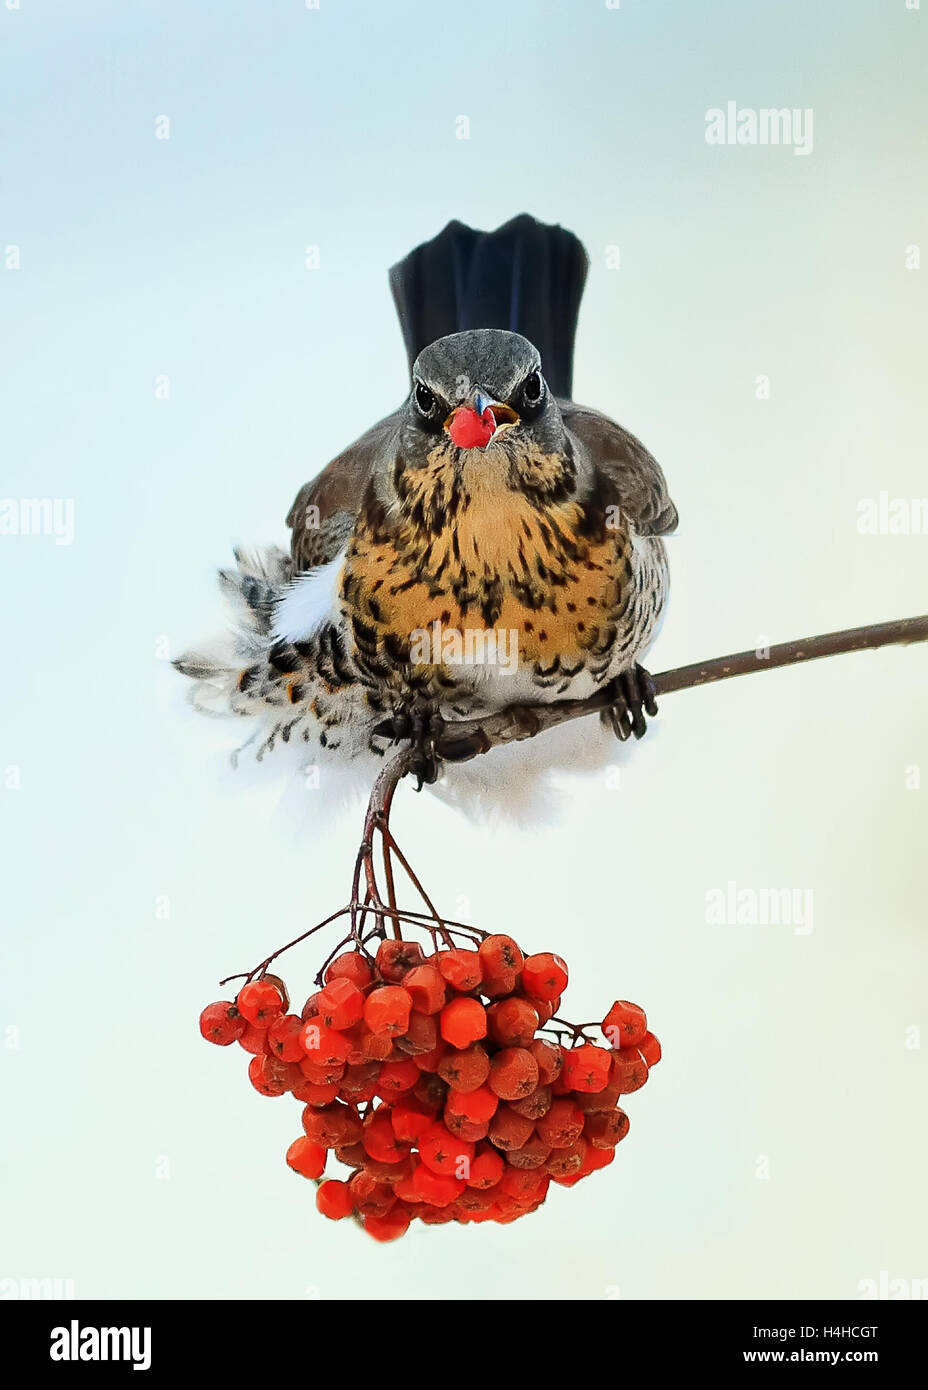 Blackbird sitting on a branch in the Park and eating the juicy red berries of mountain ash - Stock Image